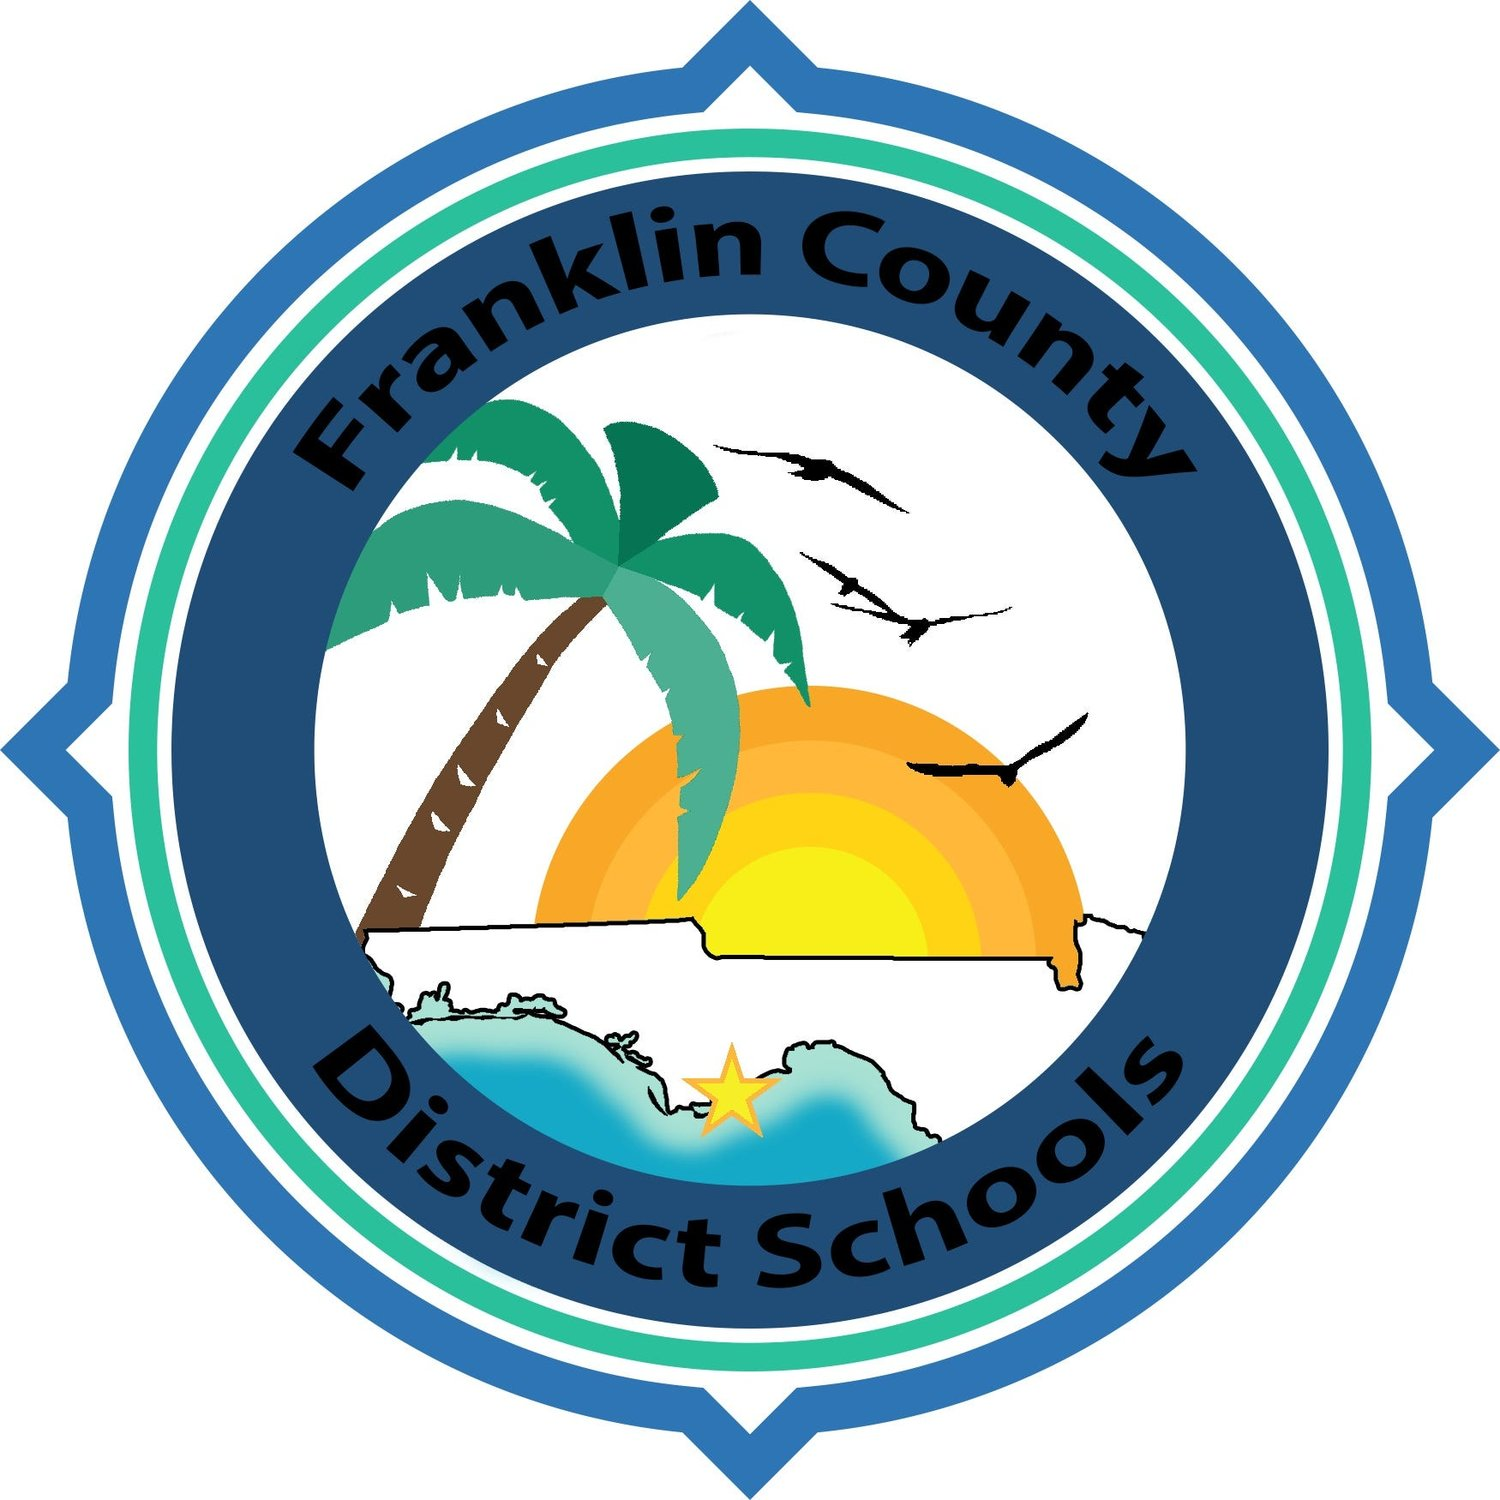 The Franklin County District Schools